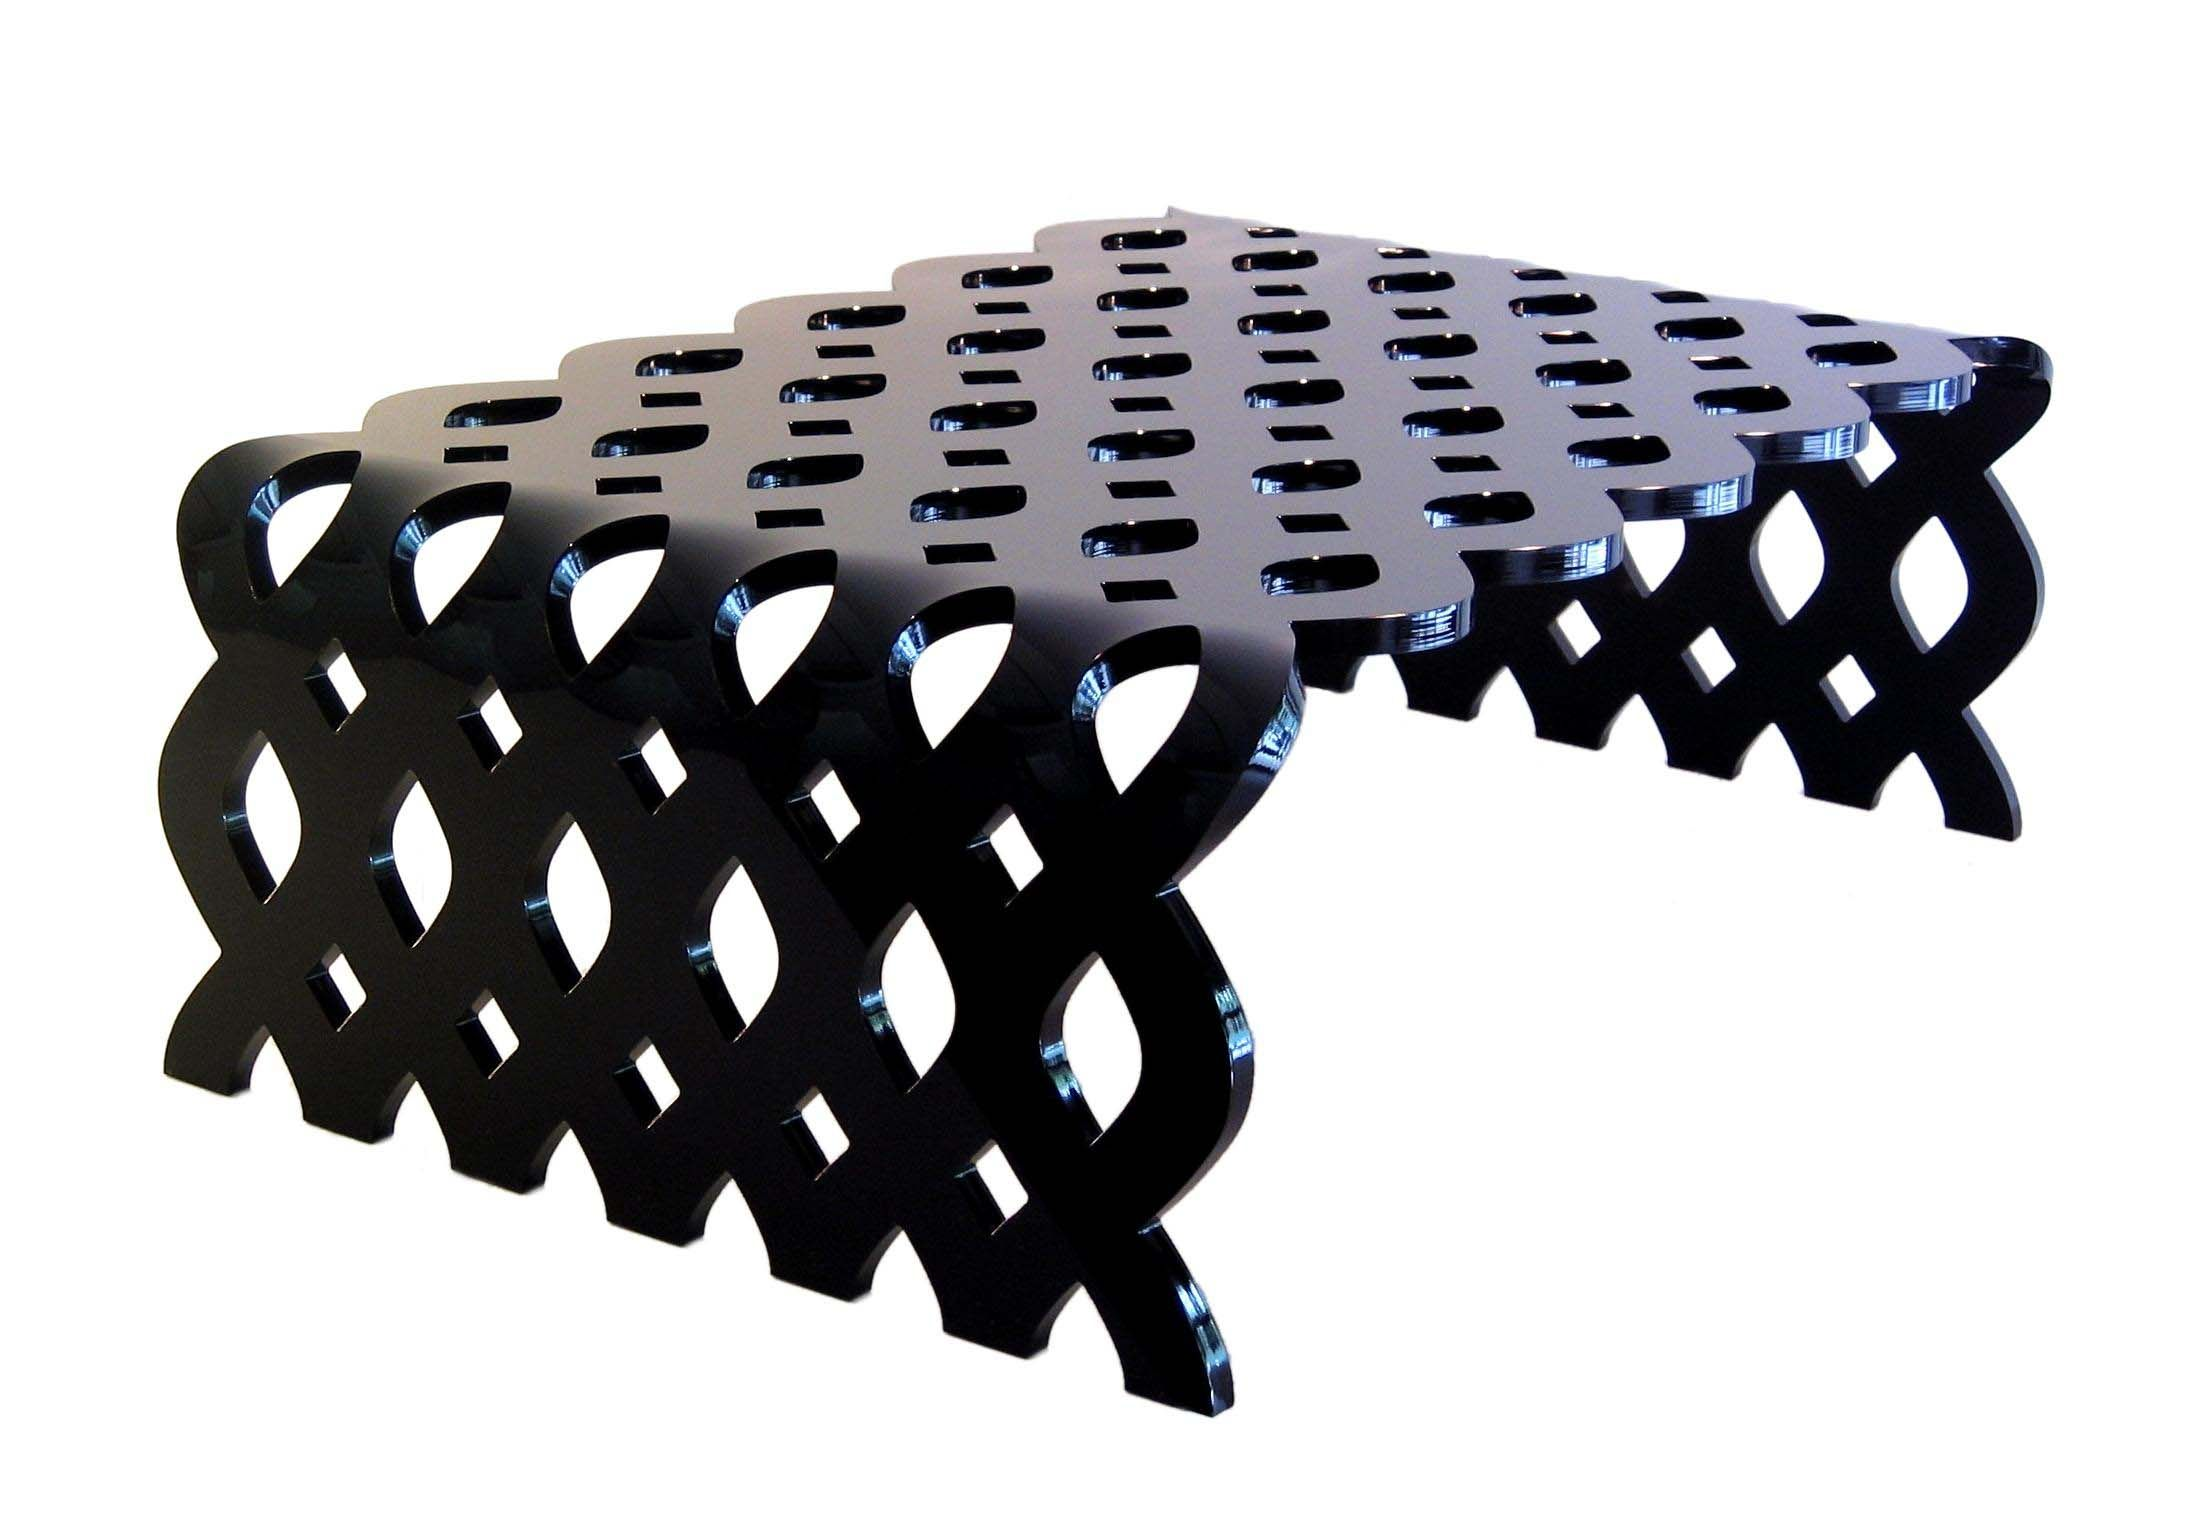 Mesa Coffee table Arab Nada se Leva para Allª Design